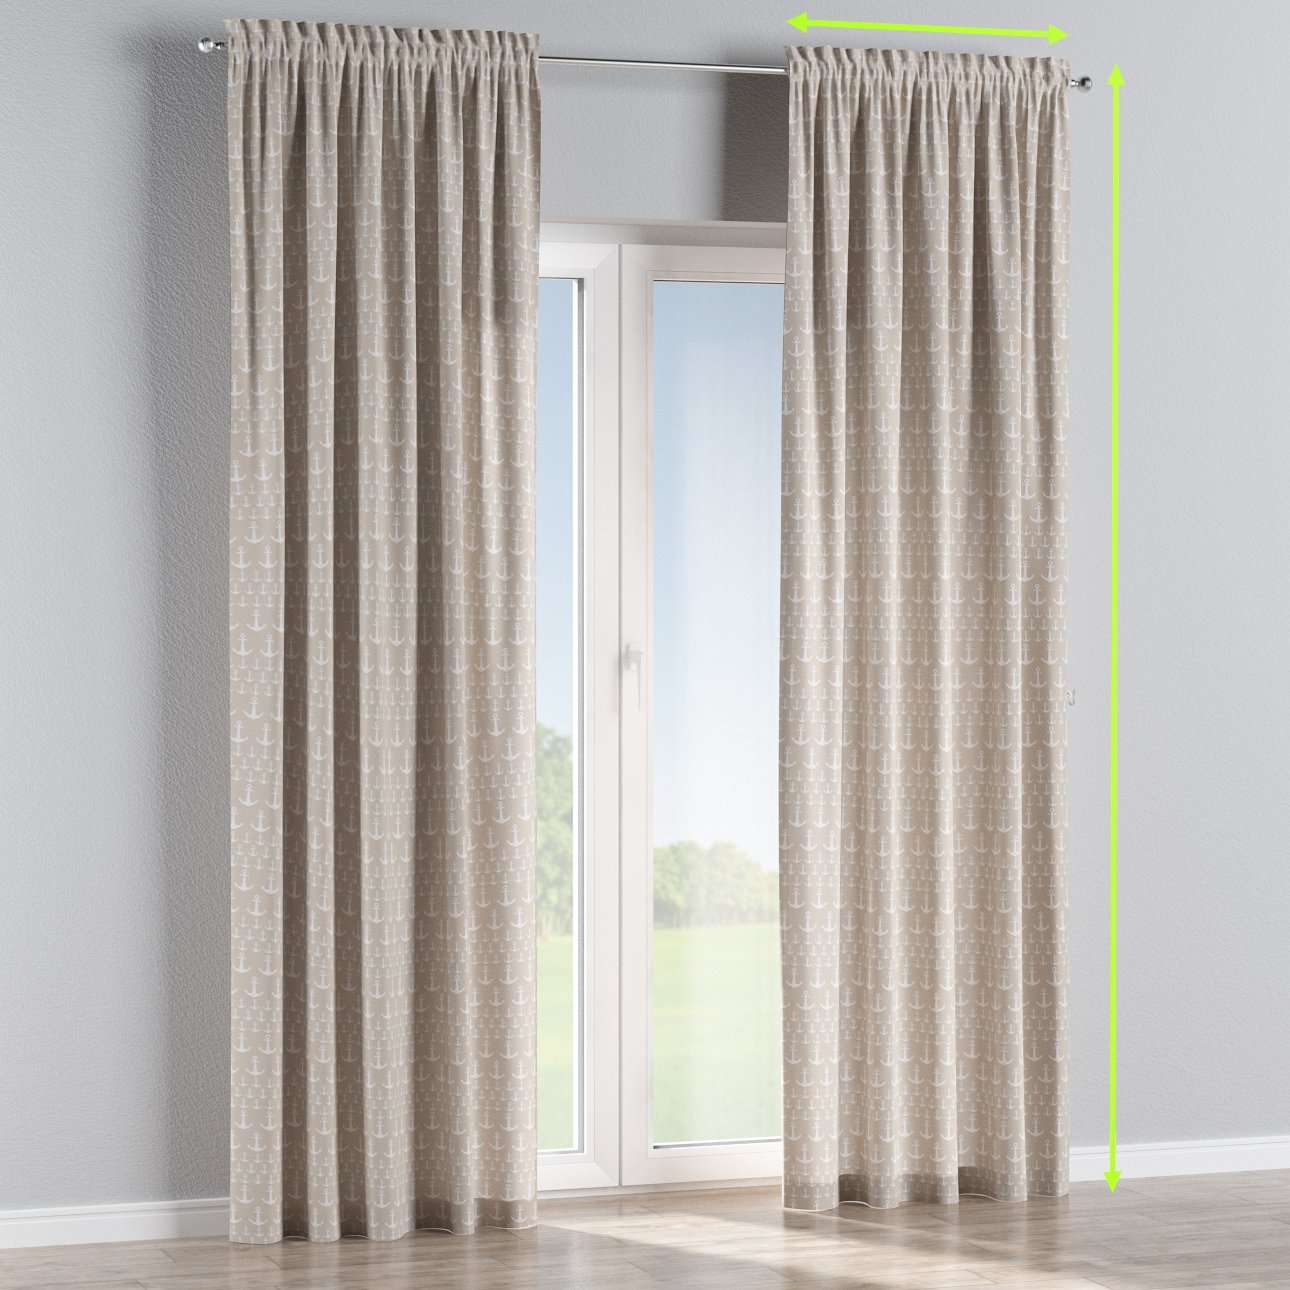 Slot and frill lined curtains in collection Marina, fabric: 140-63